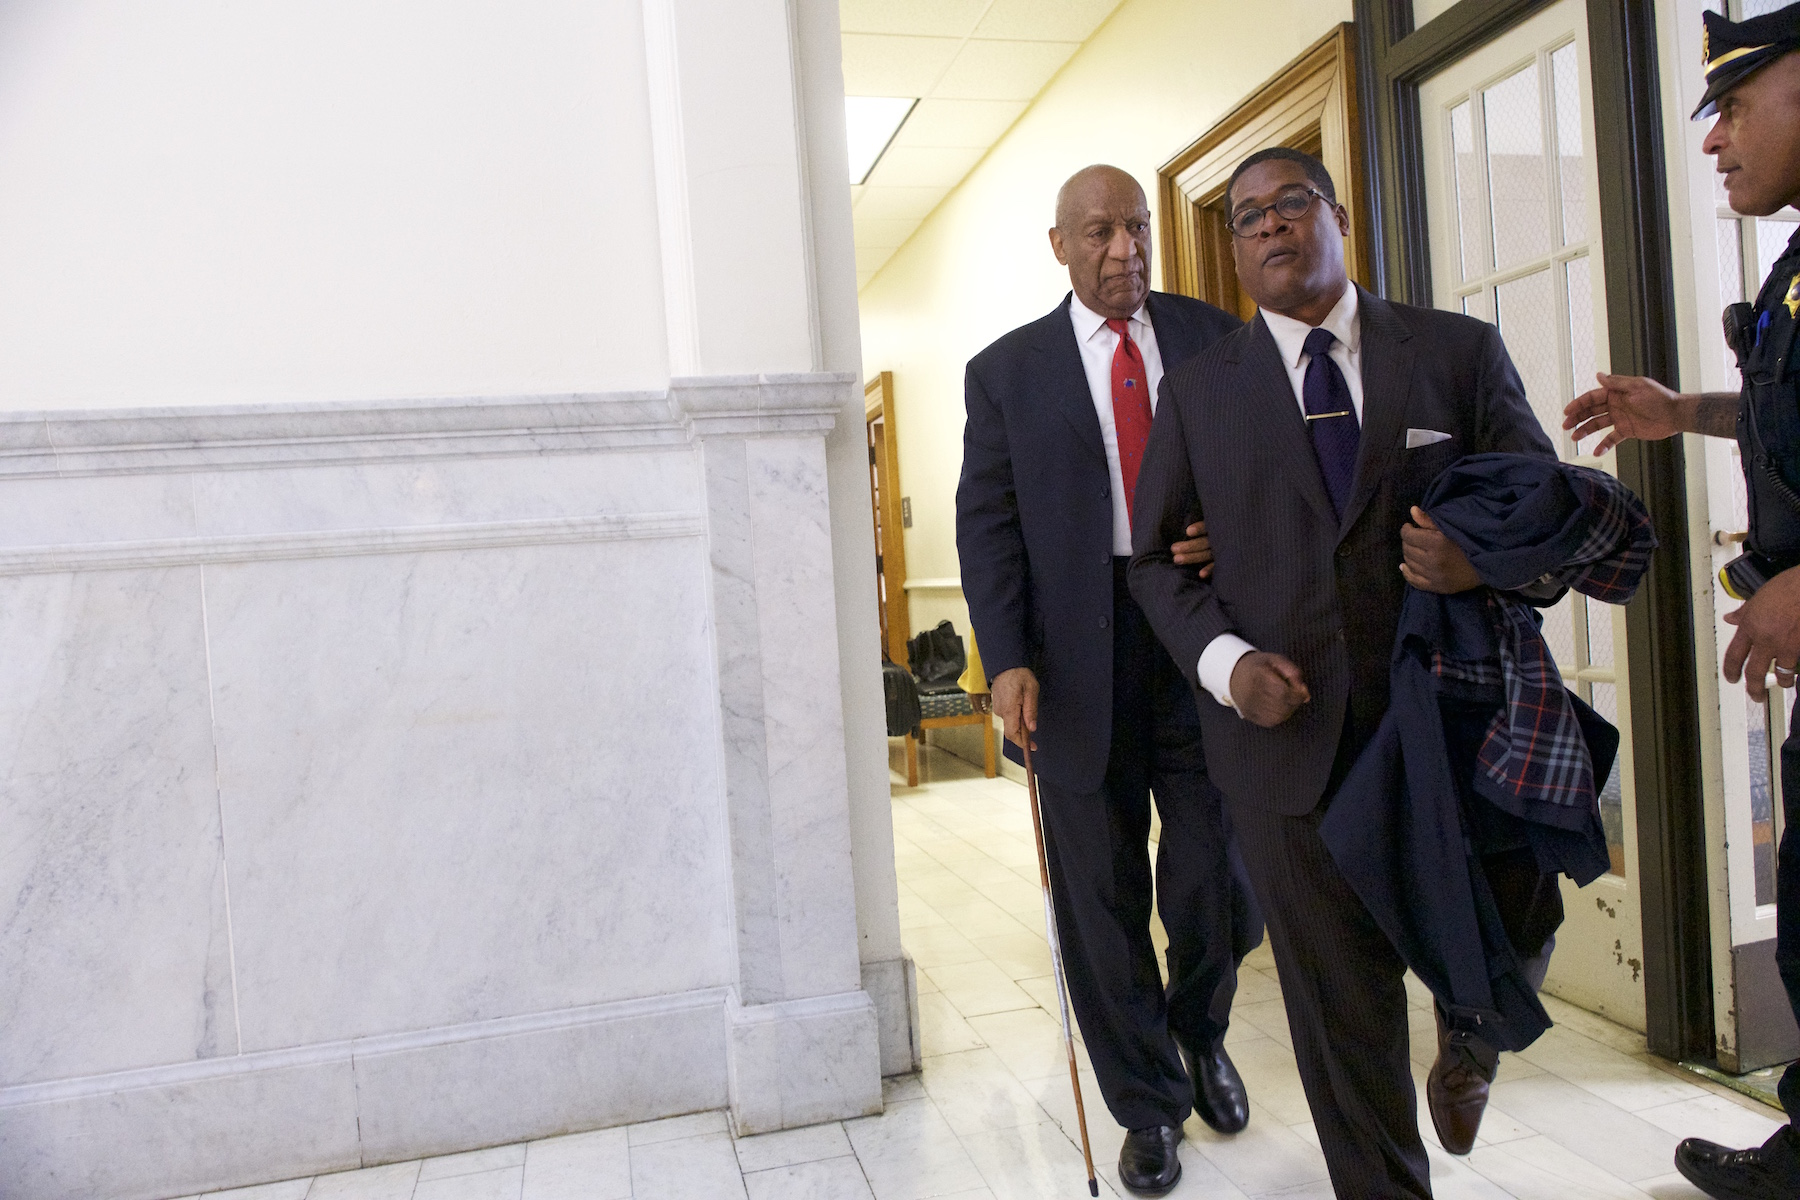 "<div class=""meta image-caption""><div class=""origin-logo origin-image none""><span>none</span></div><span class=""caption-text"">Bill Cosby departs the Montgomery County Courthouse with his publicist, Andrew Wyatt, after being found guilty on all counts in his sexual assault retrial. (Dominick Reuter/AFP/Getty Images)</span></div>"